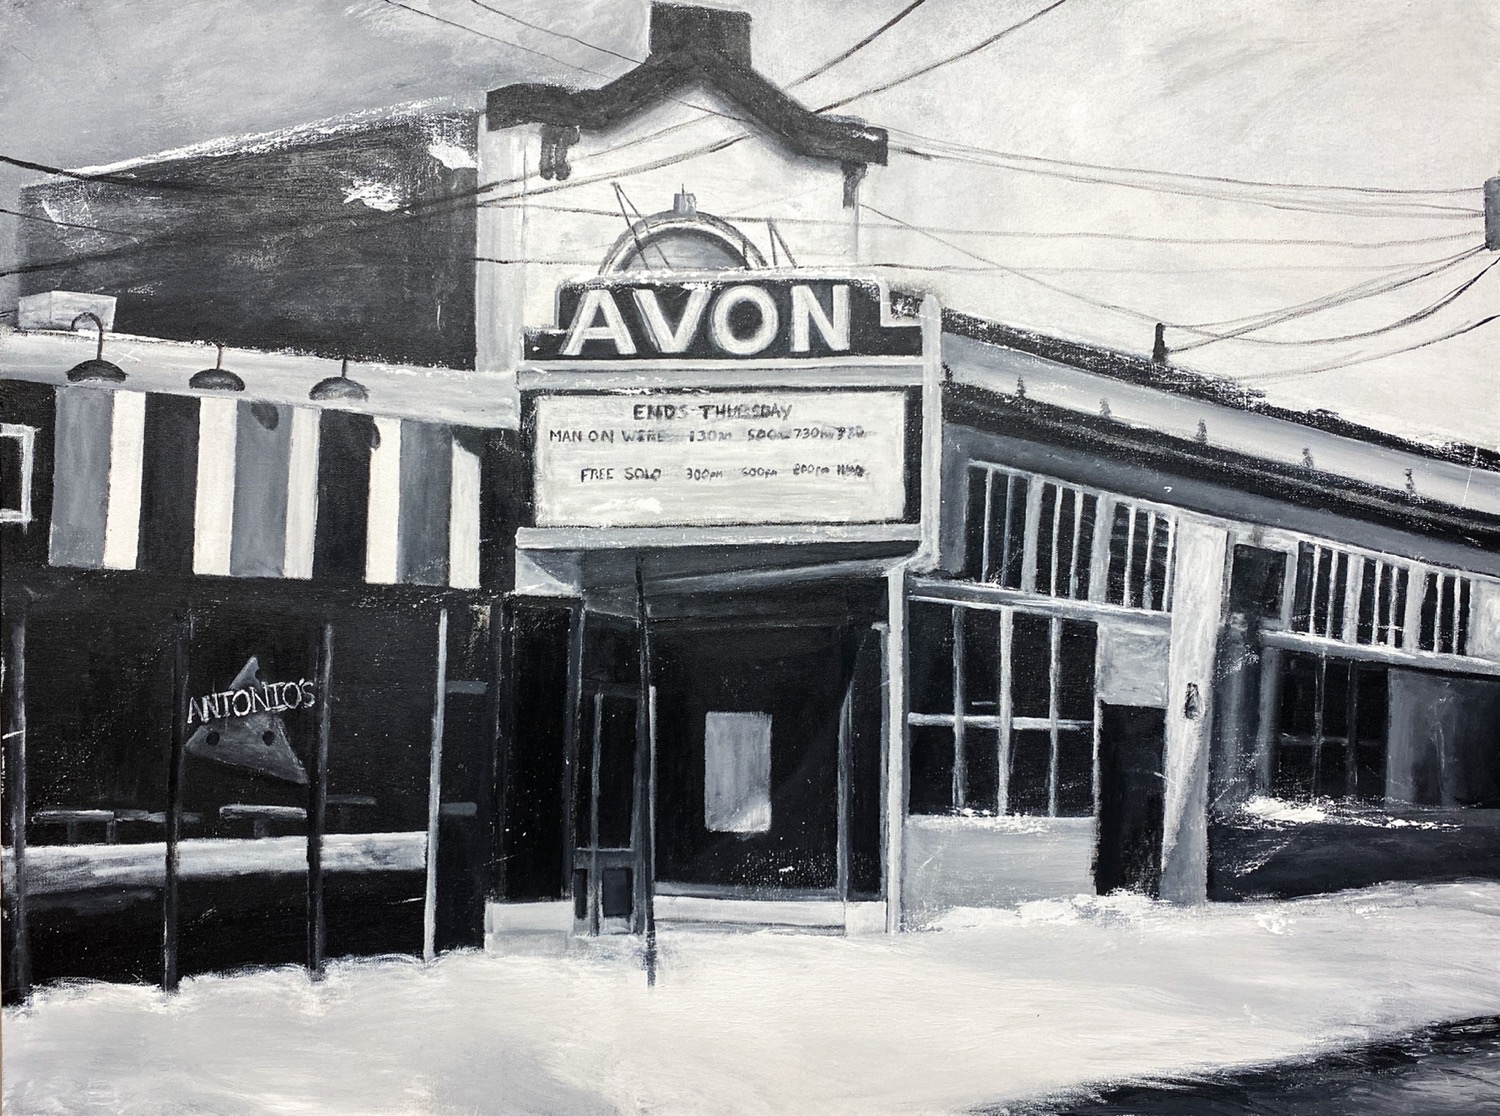 A Night at the Movies (Avon Cinema, PVD)